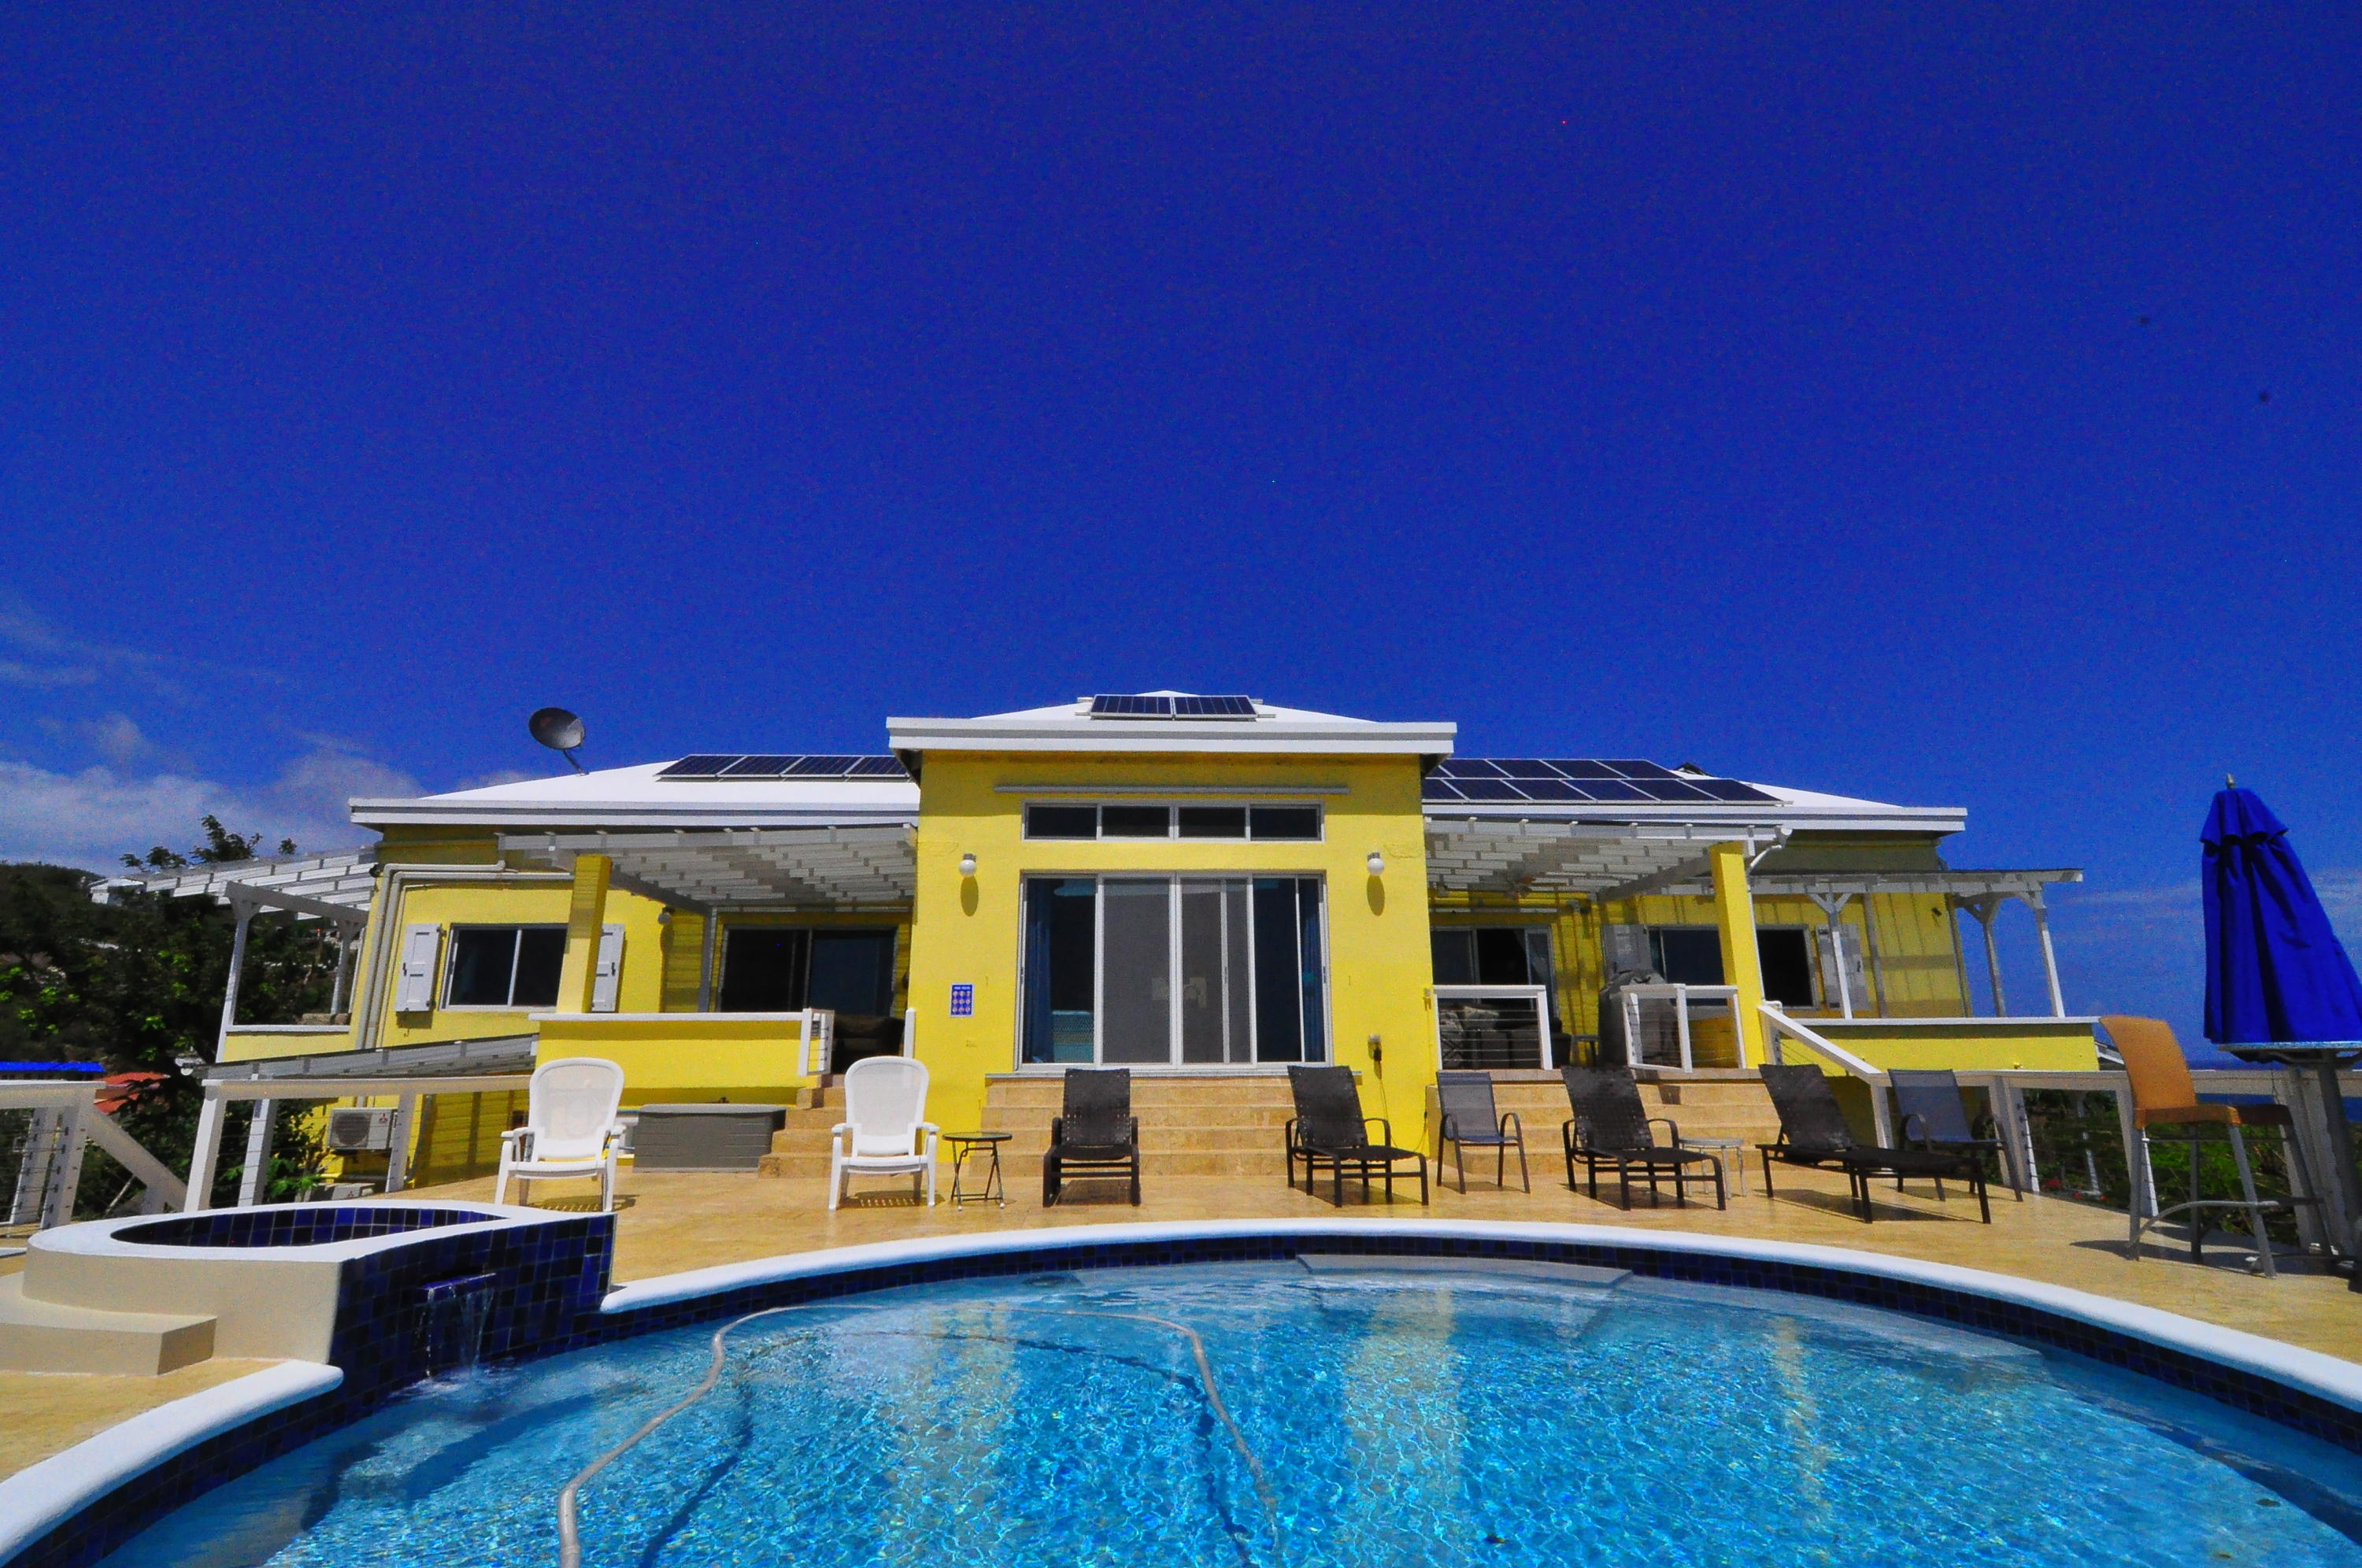 Multi-Family Home for Sale at 15-24 Frenchman Bay FB 15-24 Frenchman Bay FB St Thomas, Virgin Islands 00802 United States Virgin Islands